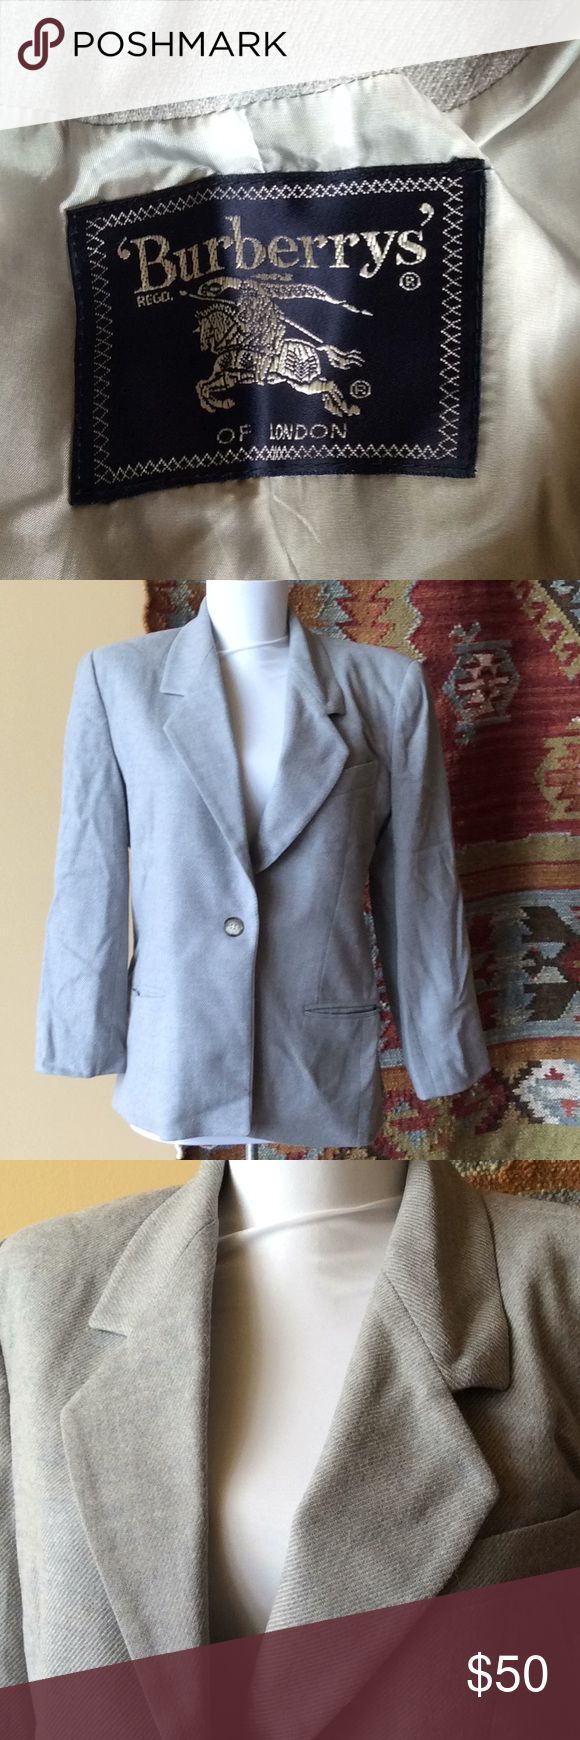 Burberry Vintage light blue blazer Good used condition, just needs a good pressing, some light stains on inside lining as pictured, smoke free home Burberry Jackets & Coats Blazers